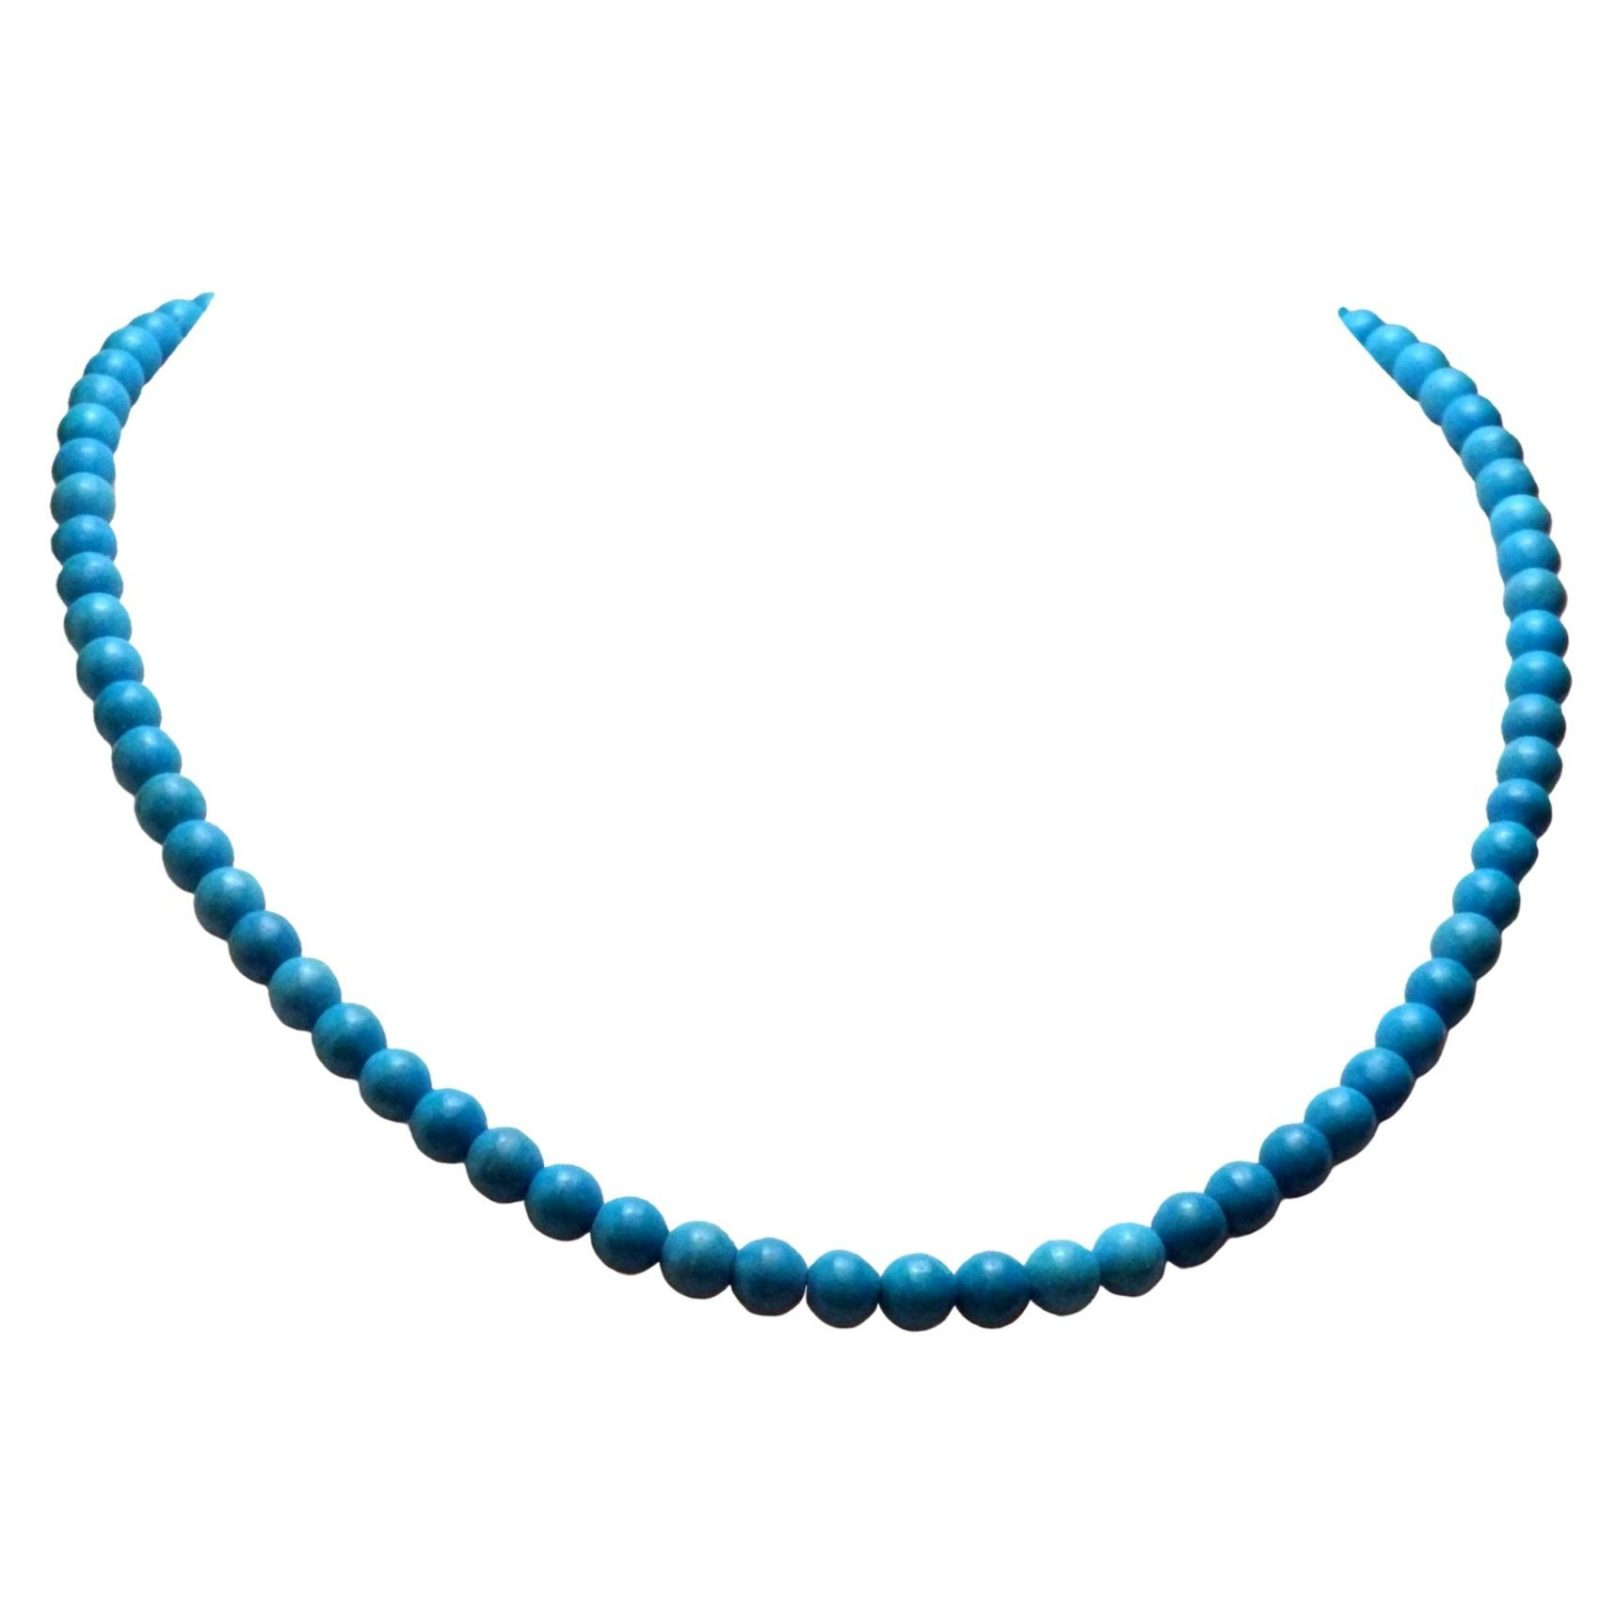 Aqua blue magnesite necklace or faux turquoise 1215